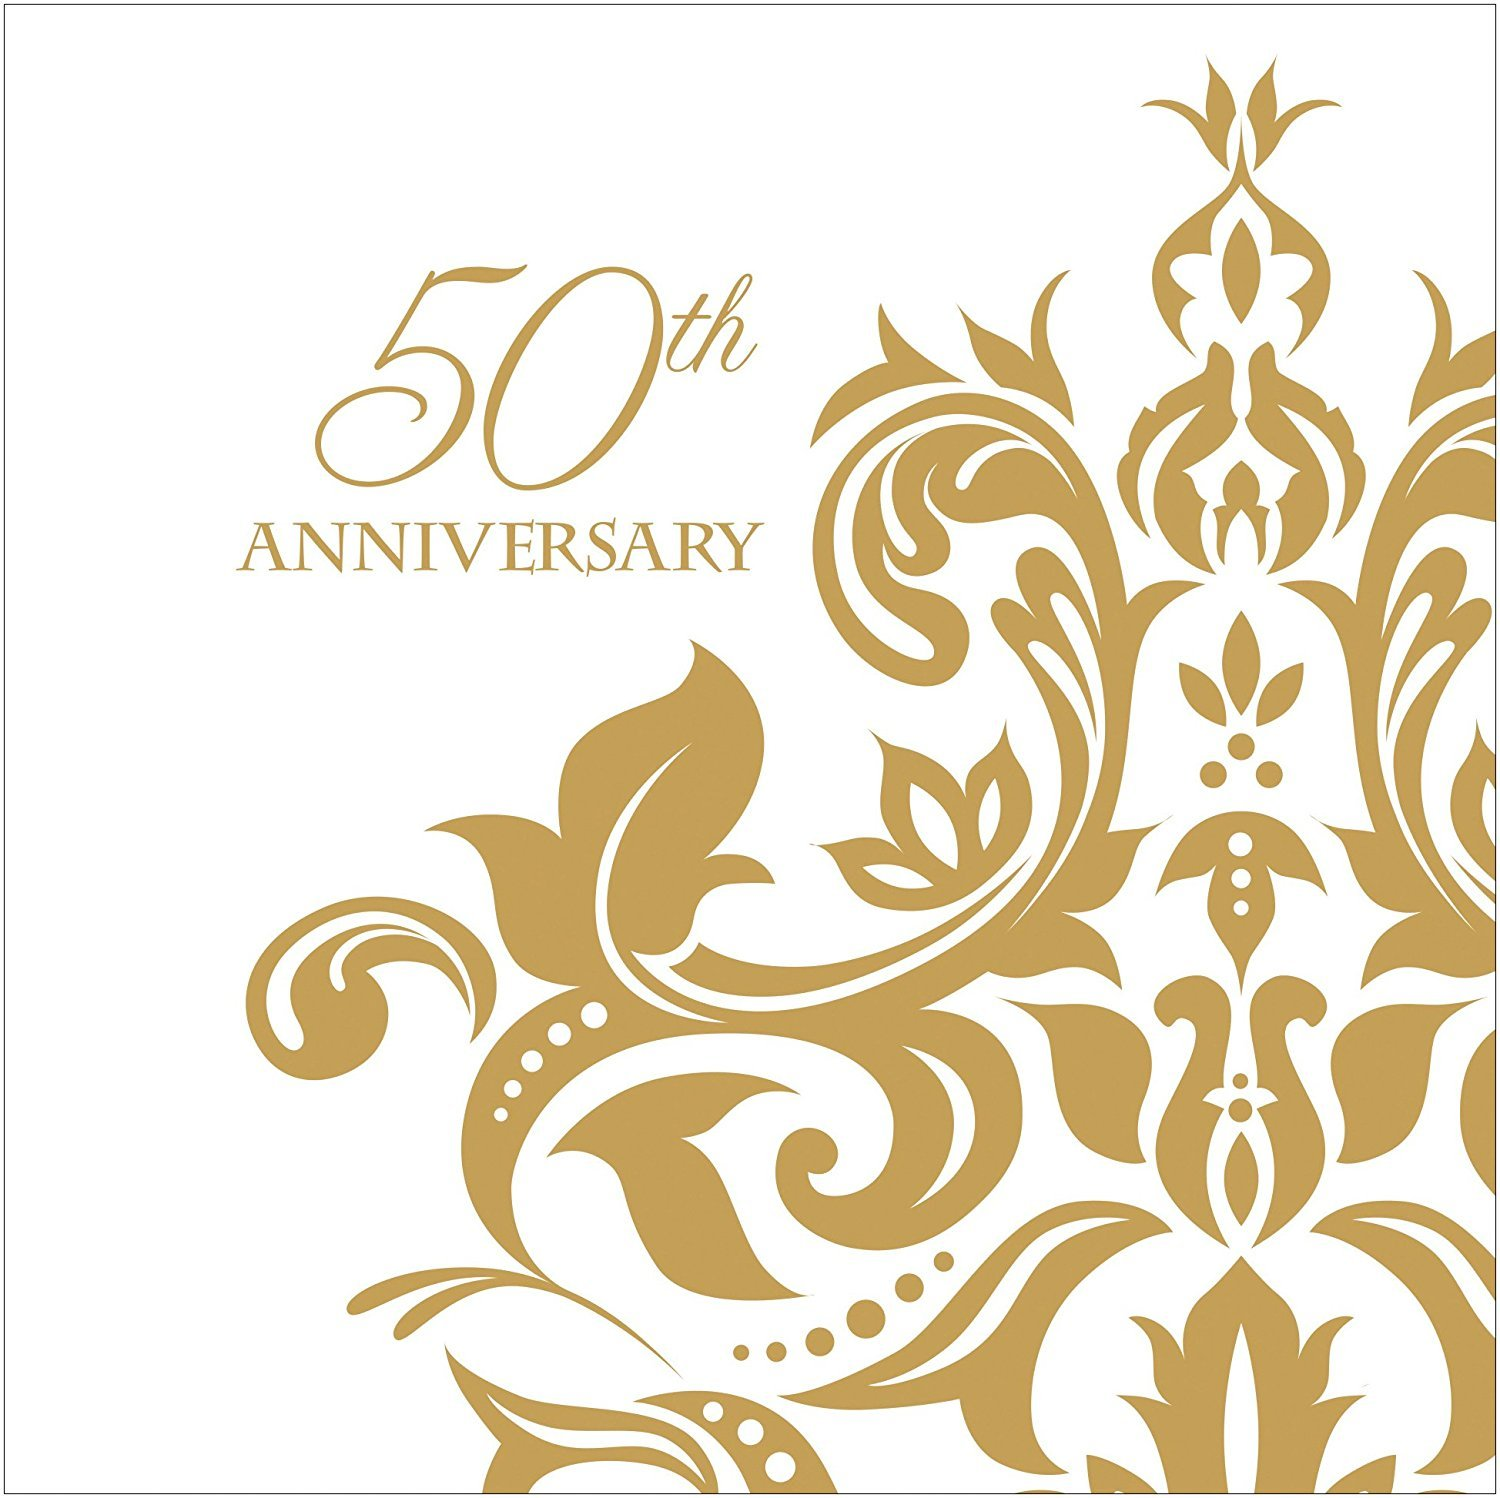 100 Count 3 Ply 50th Anniversary Napkins Wedding Party Favors Supplies Decorations White & Golden Beverage Napkin by Creative Converting